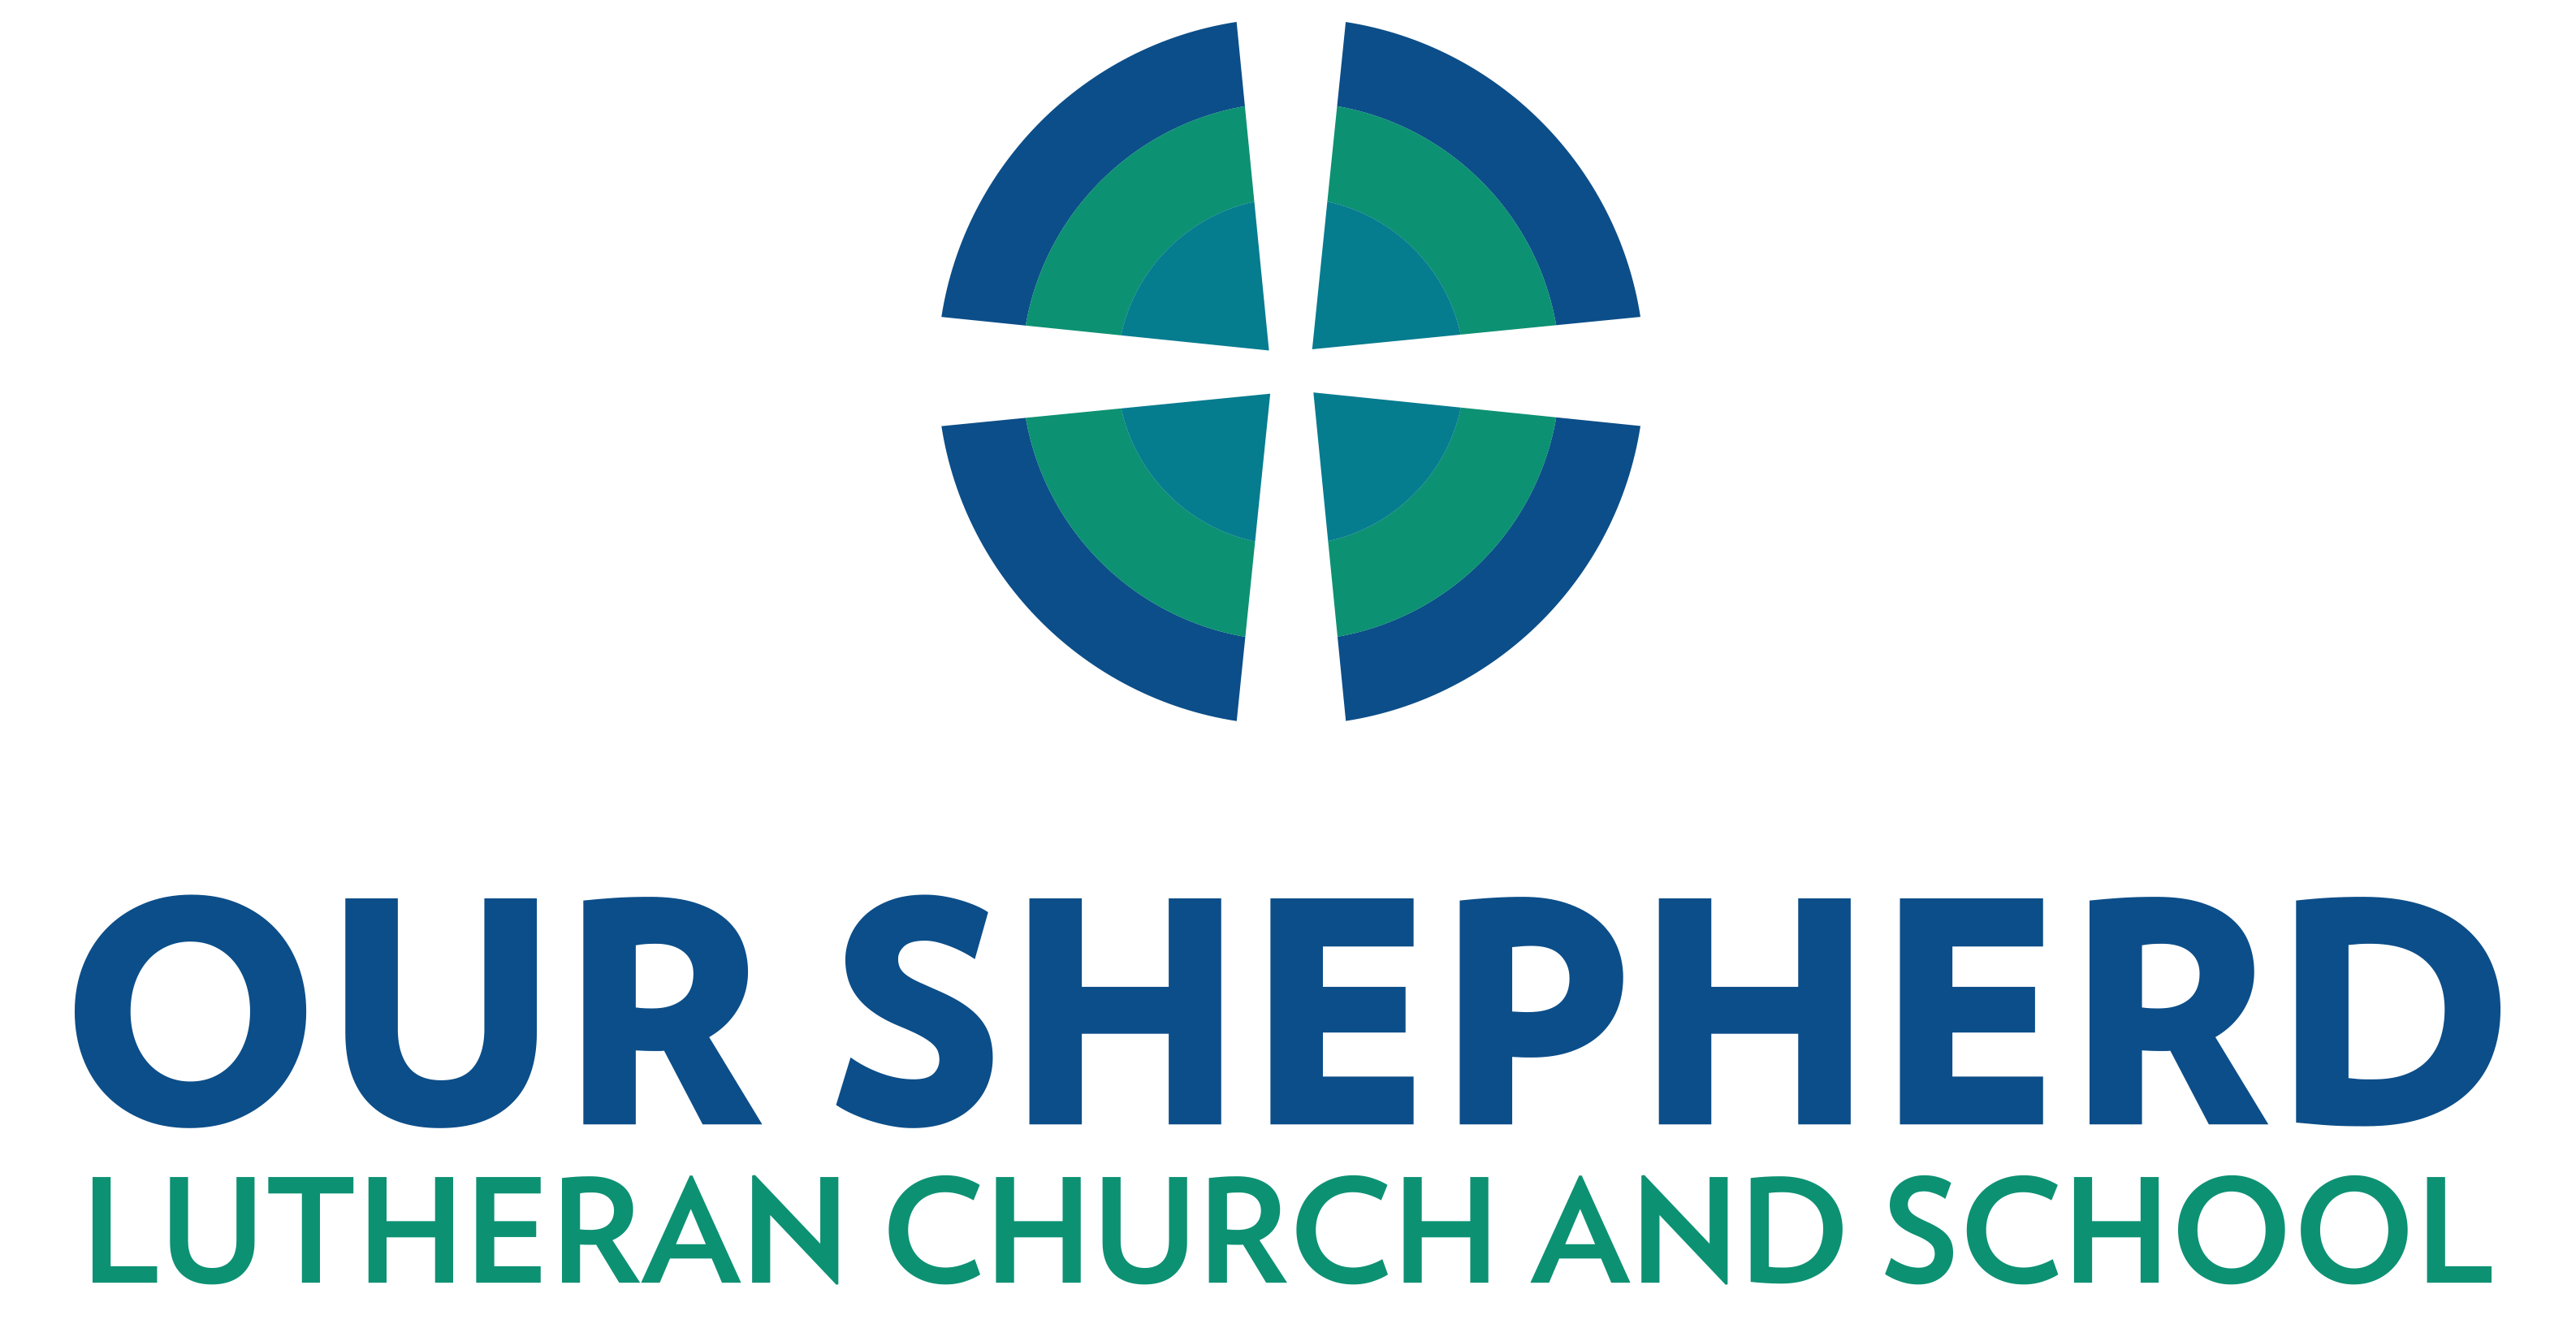 Our Shepherd Lutheran Church and School